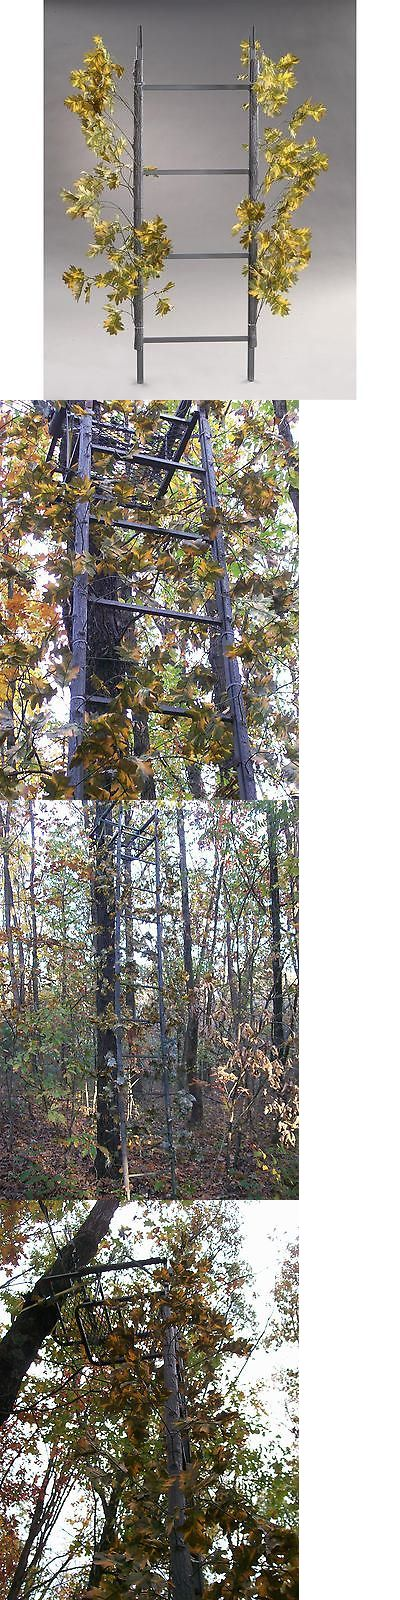 Blind and Tree Stand Accessories 177912: Deer Stand 16Ft Ladderflauge System Camo Climbing Ladder Tripod Blind Turkey -> BUY IT NOW ONLY: $57.01 on eBay!